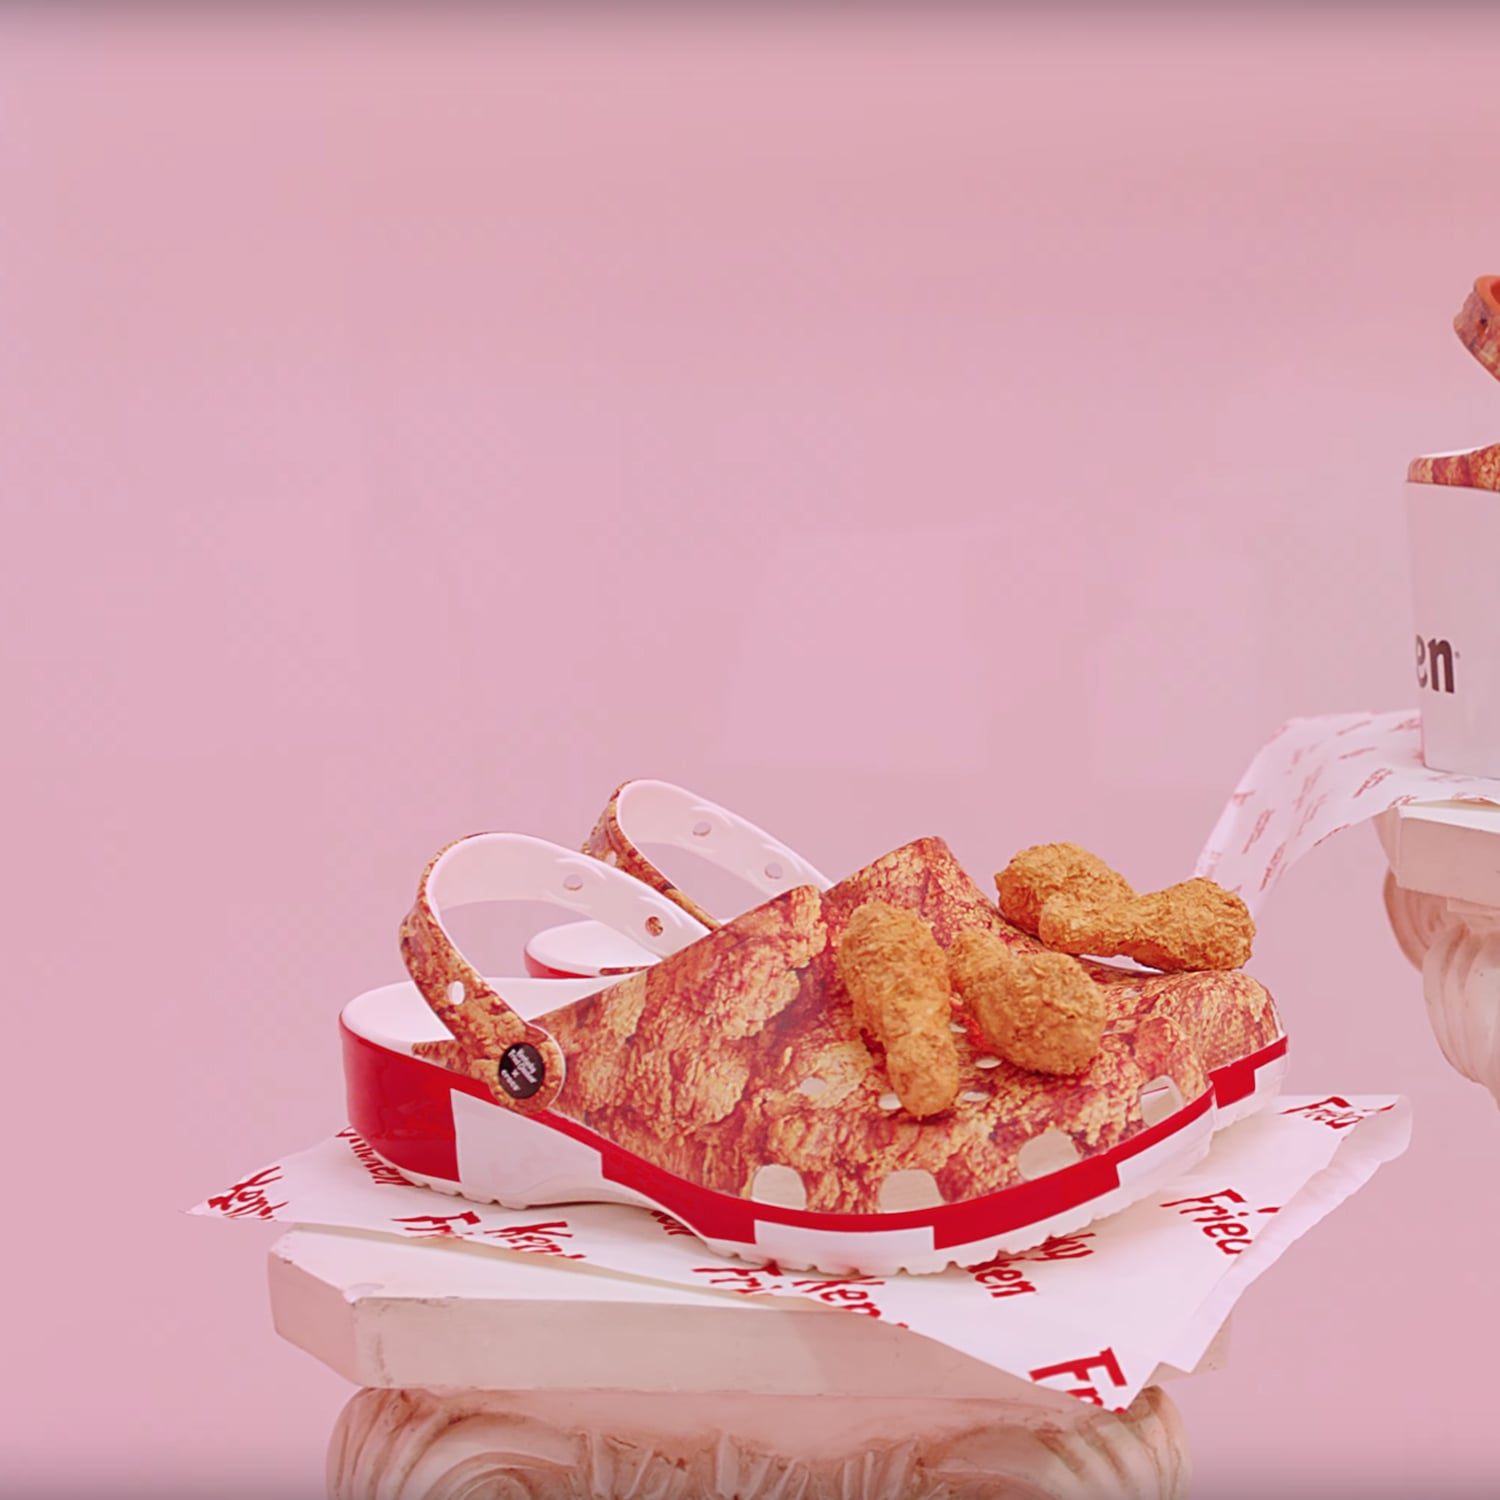 Kfc Fried Chicken Crocs Popsugar Food